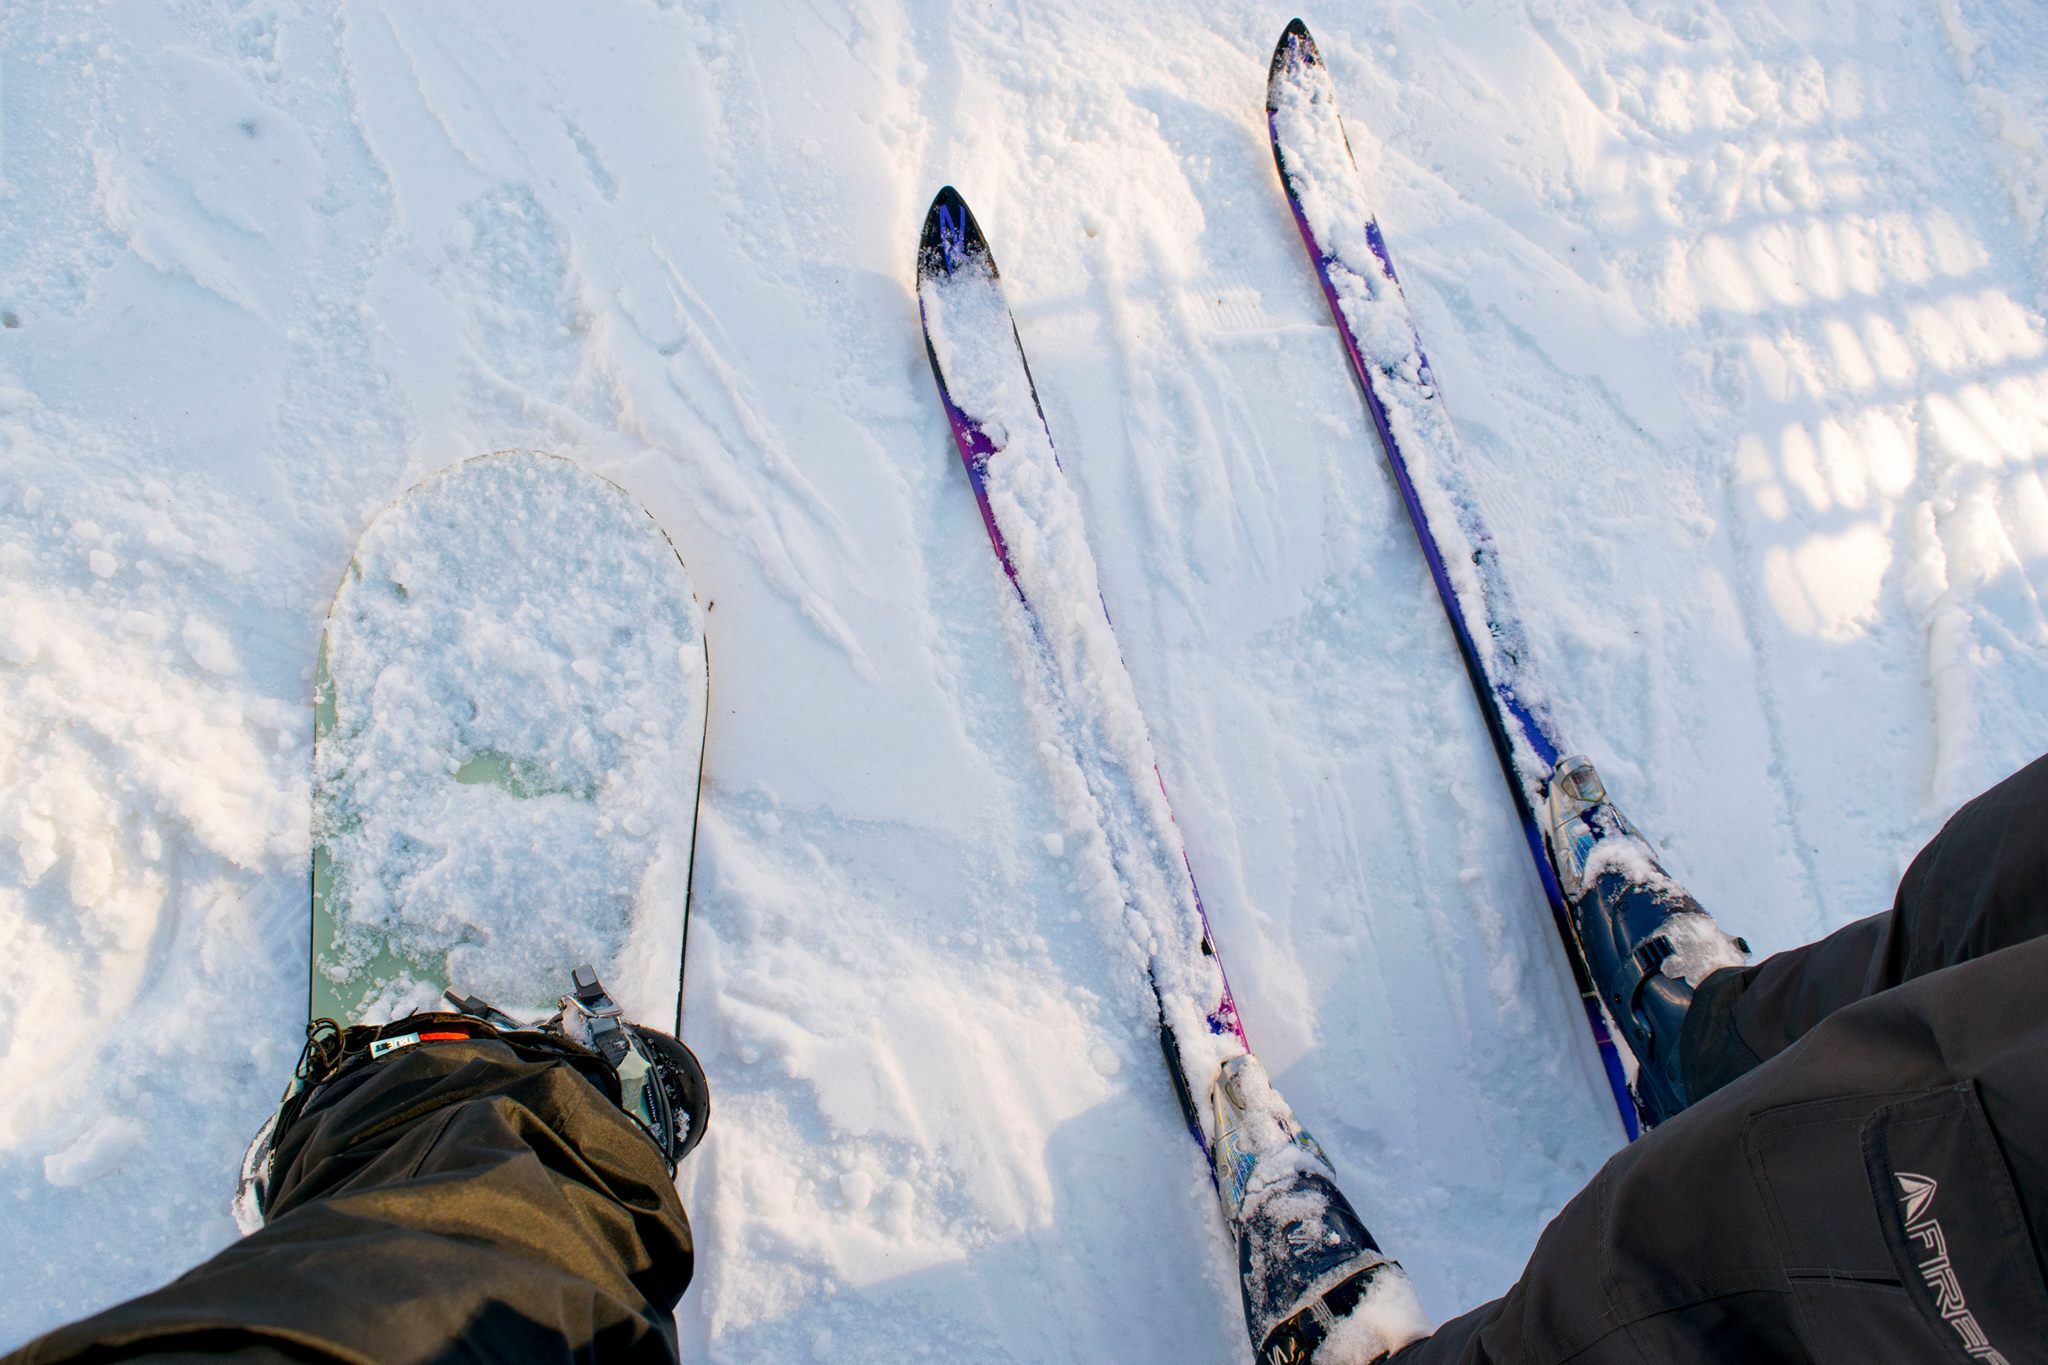 Getting your hands on the right gear is an important part of skiing and snowboarding.